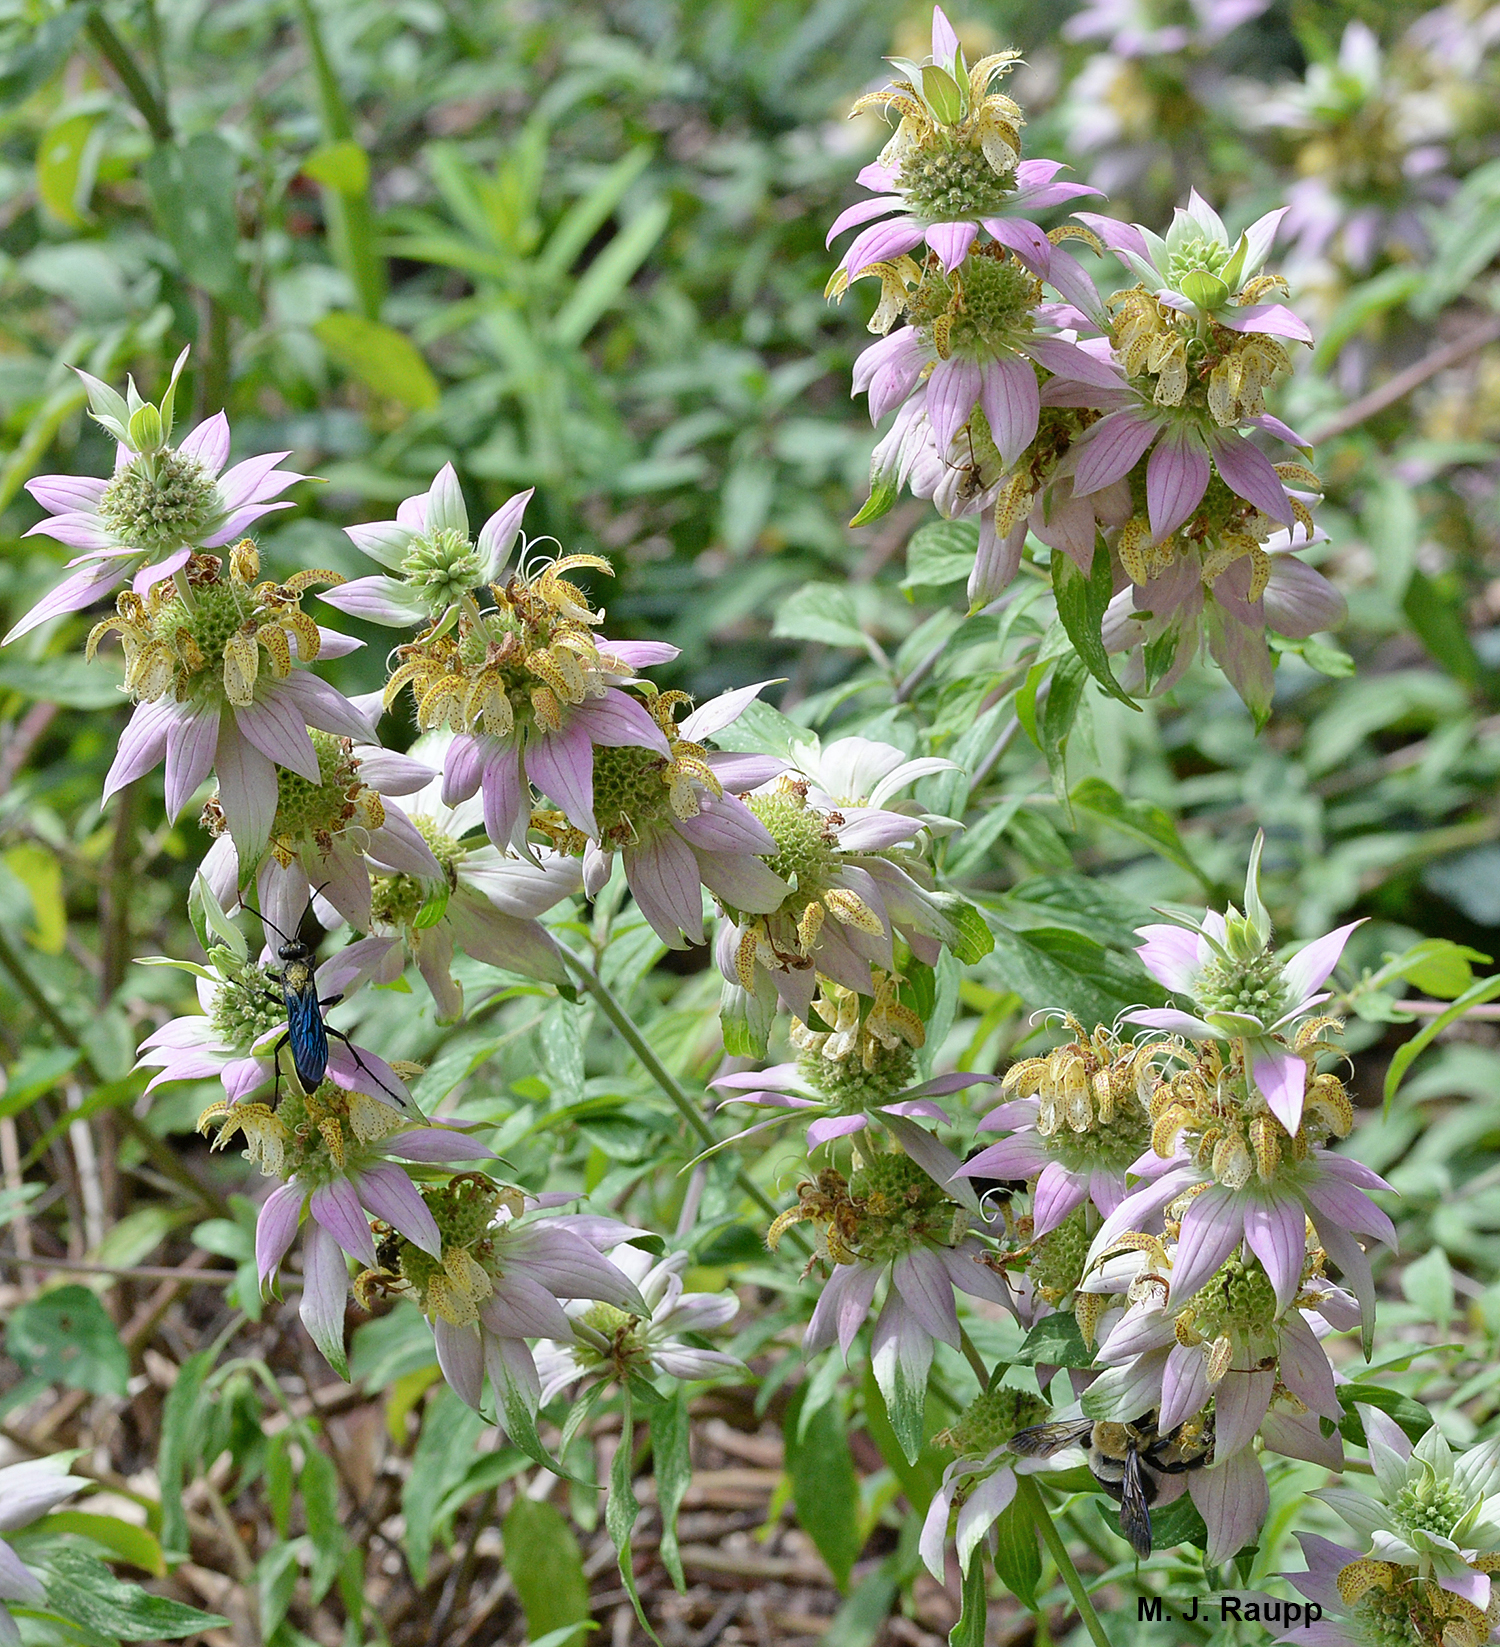 Spotted horsemint rocks with pollinators on late summer days.